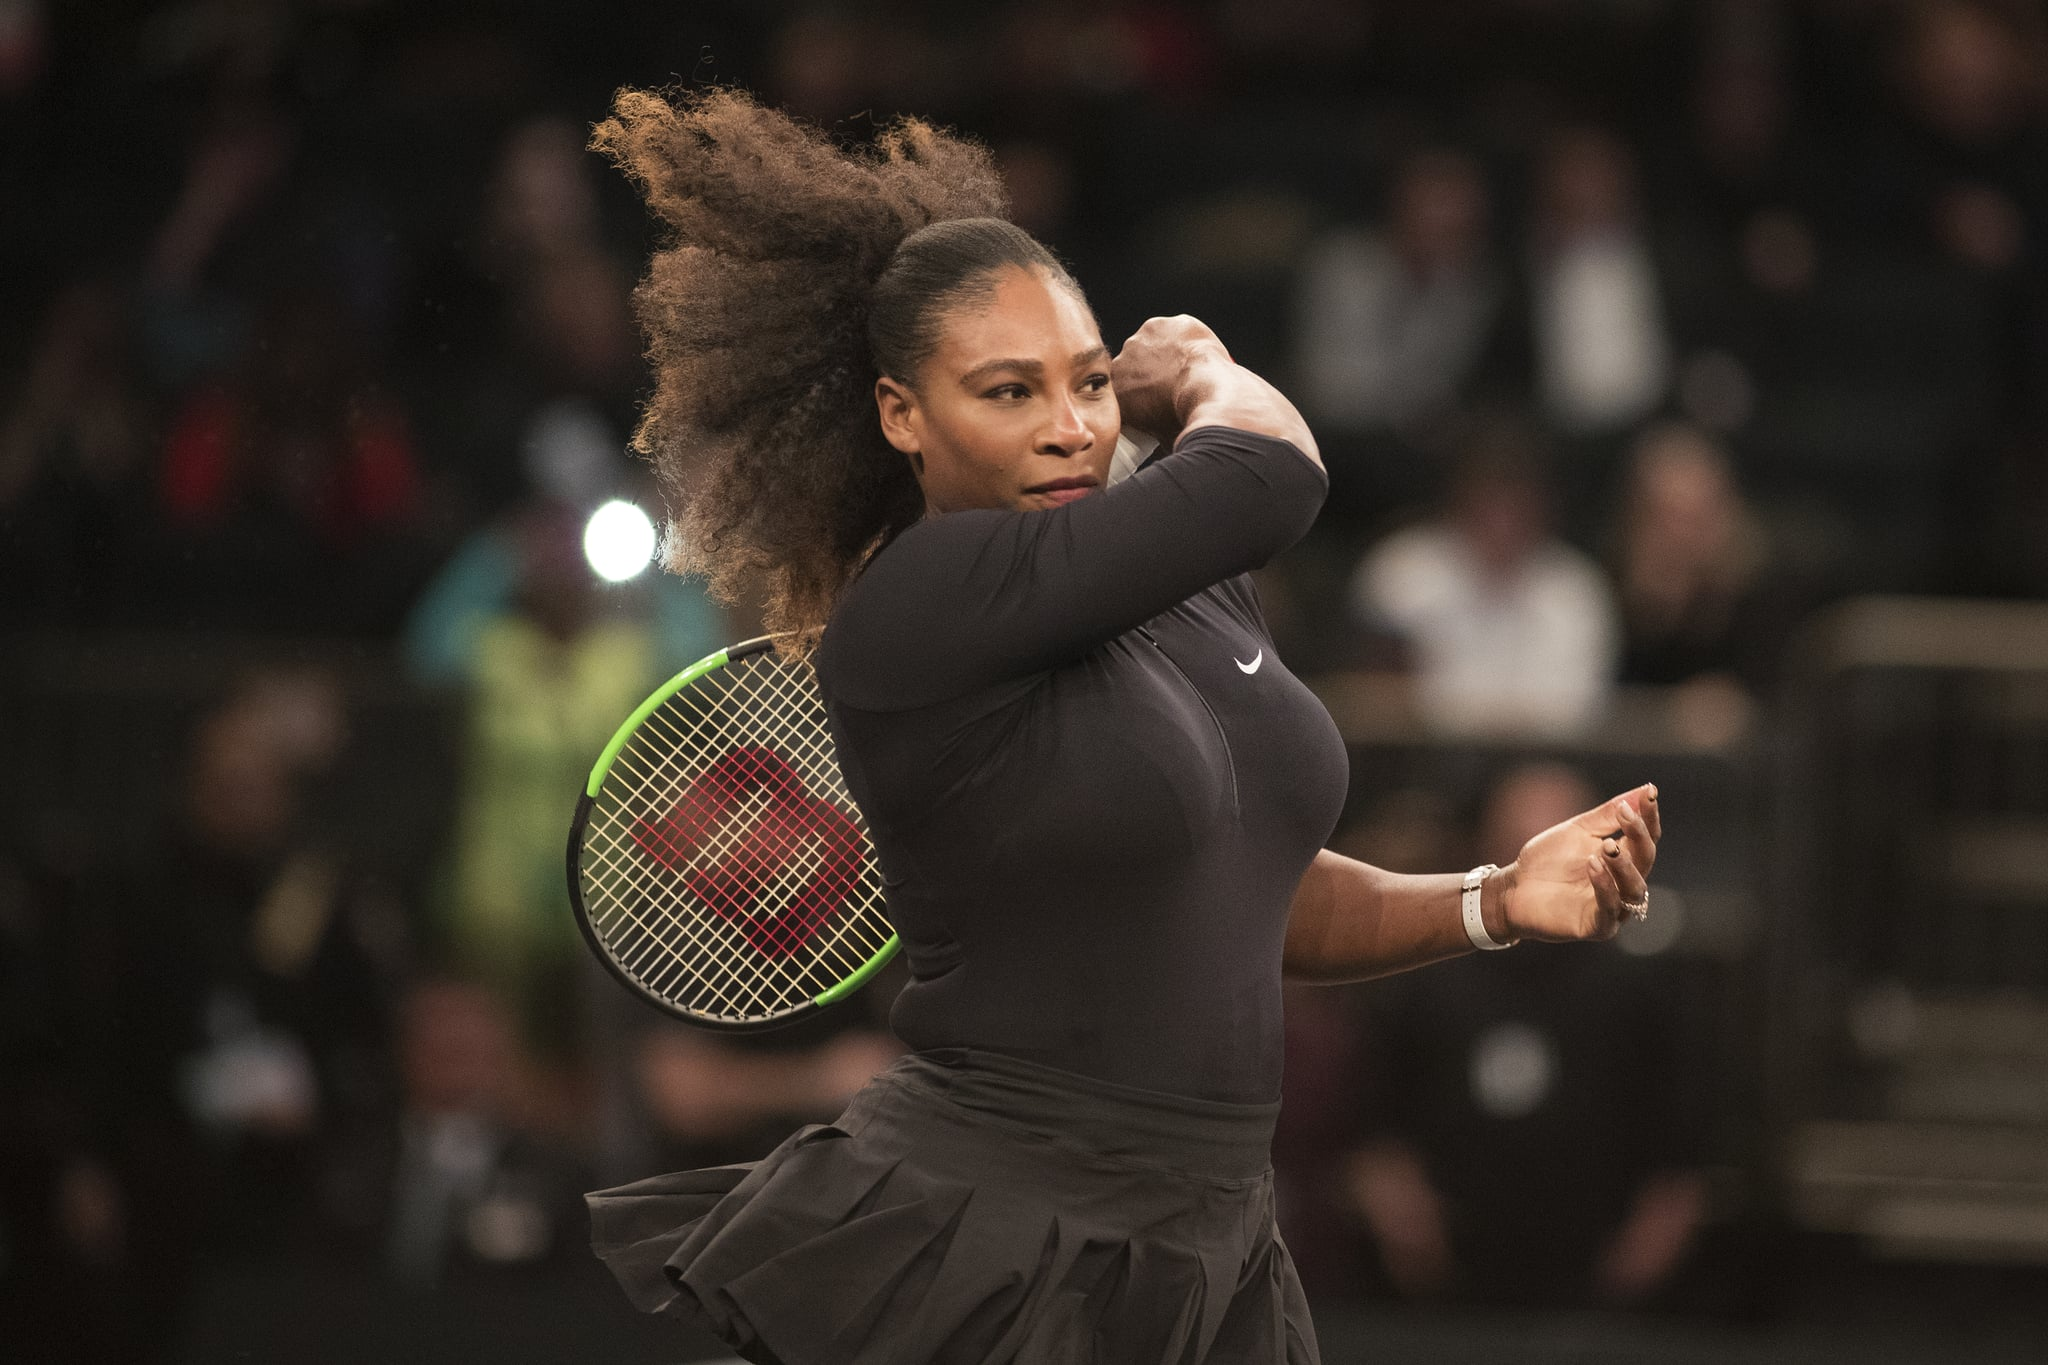 NEW YORK, NEW YORK - MARCH 5: Serena Williams of the United States in action during the Tie Break Tens Tennis Tournament at Madison Square Garden on March 5, 2018 New York City.  (Photo by Tim Clayton/Corbis via Getty Images)